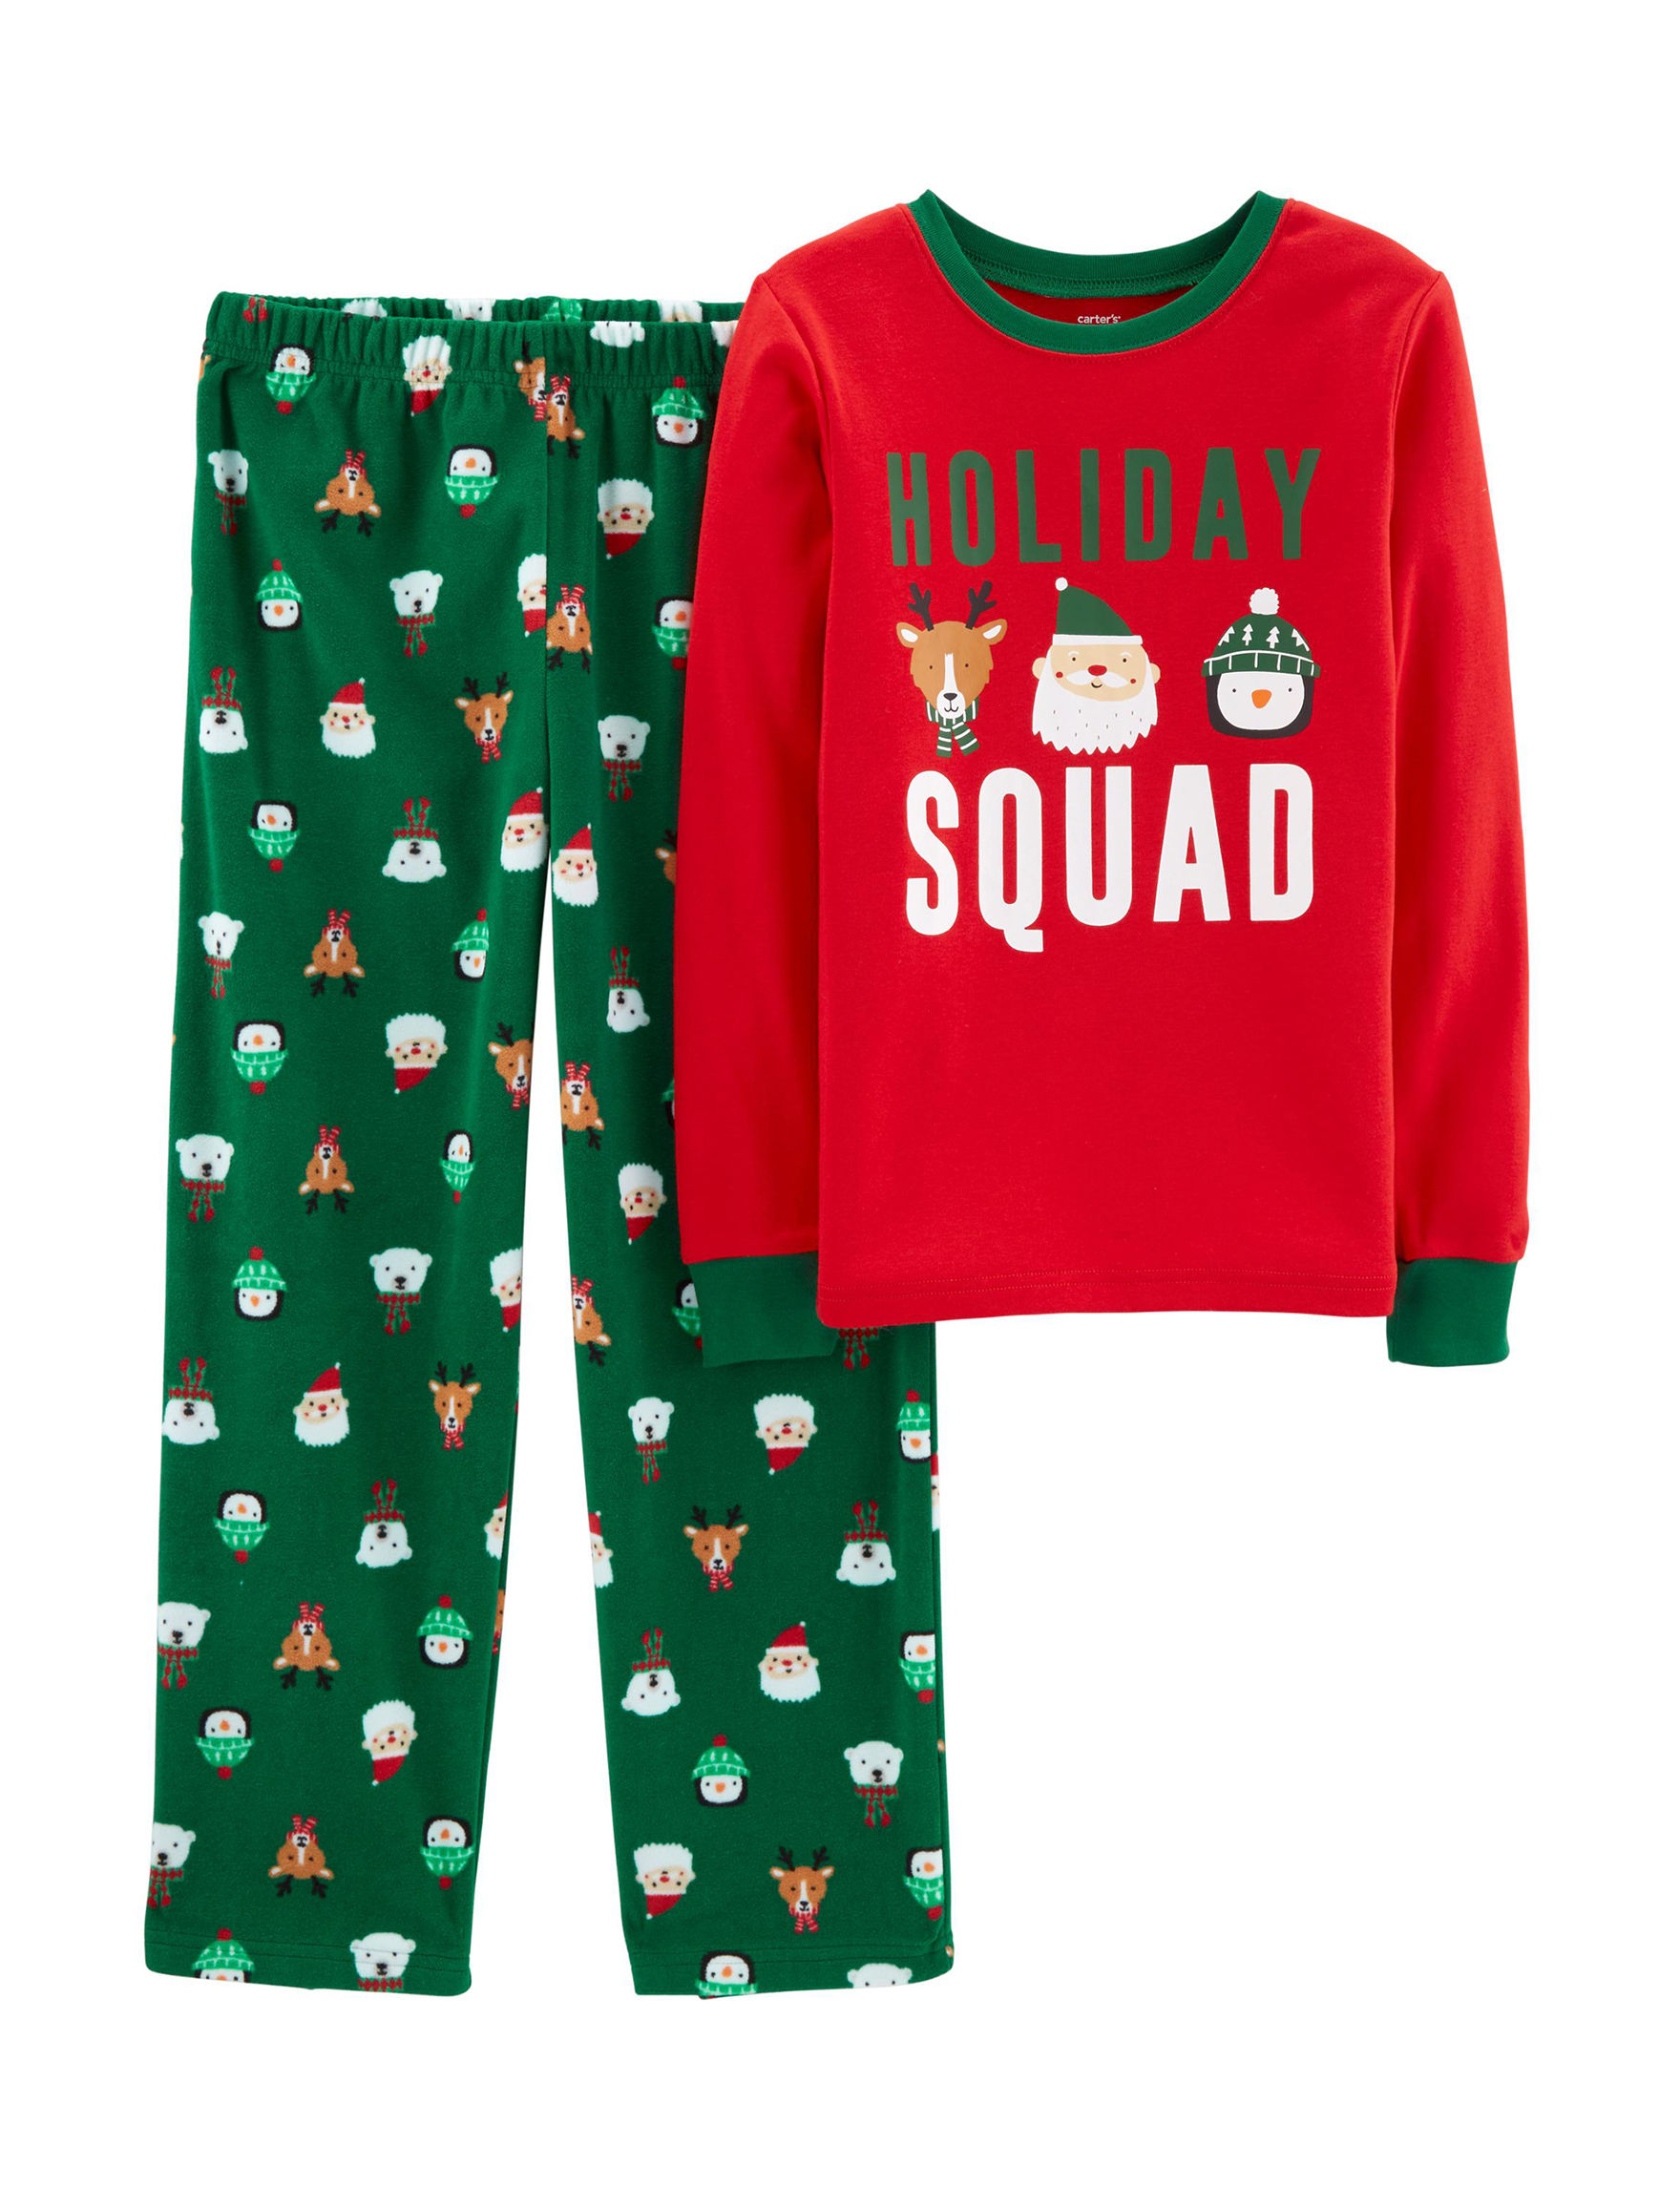 Carter's Red / Green Pajama Sets